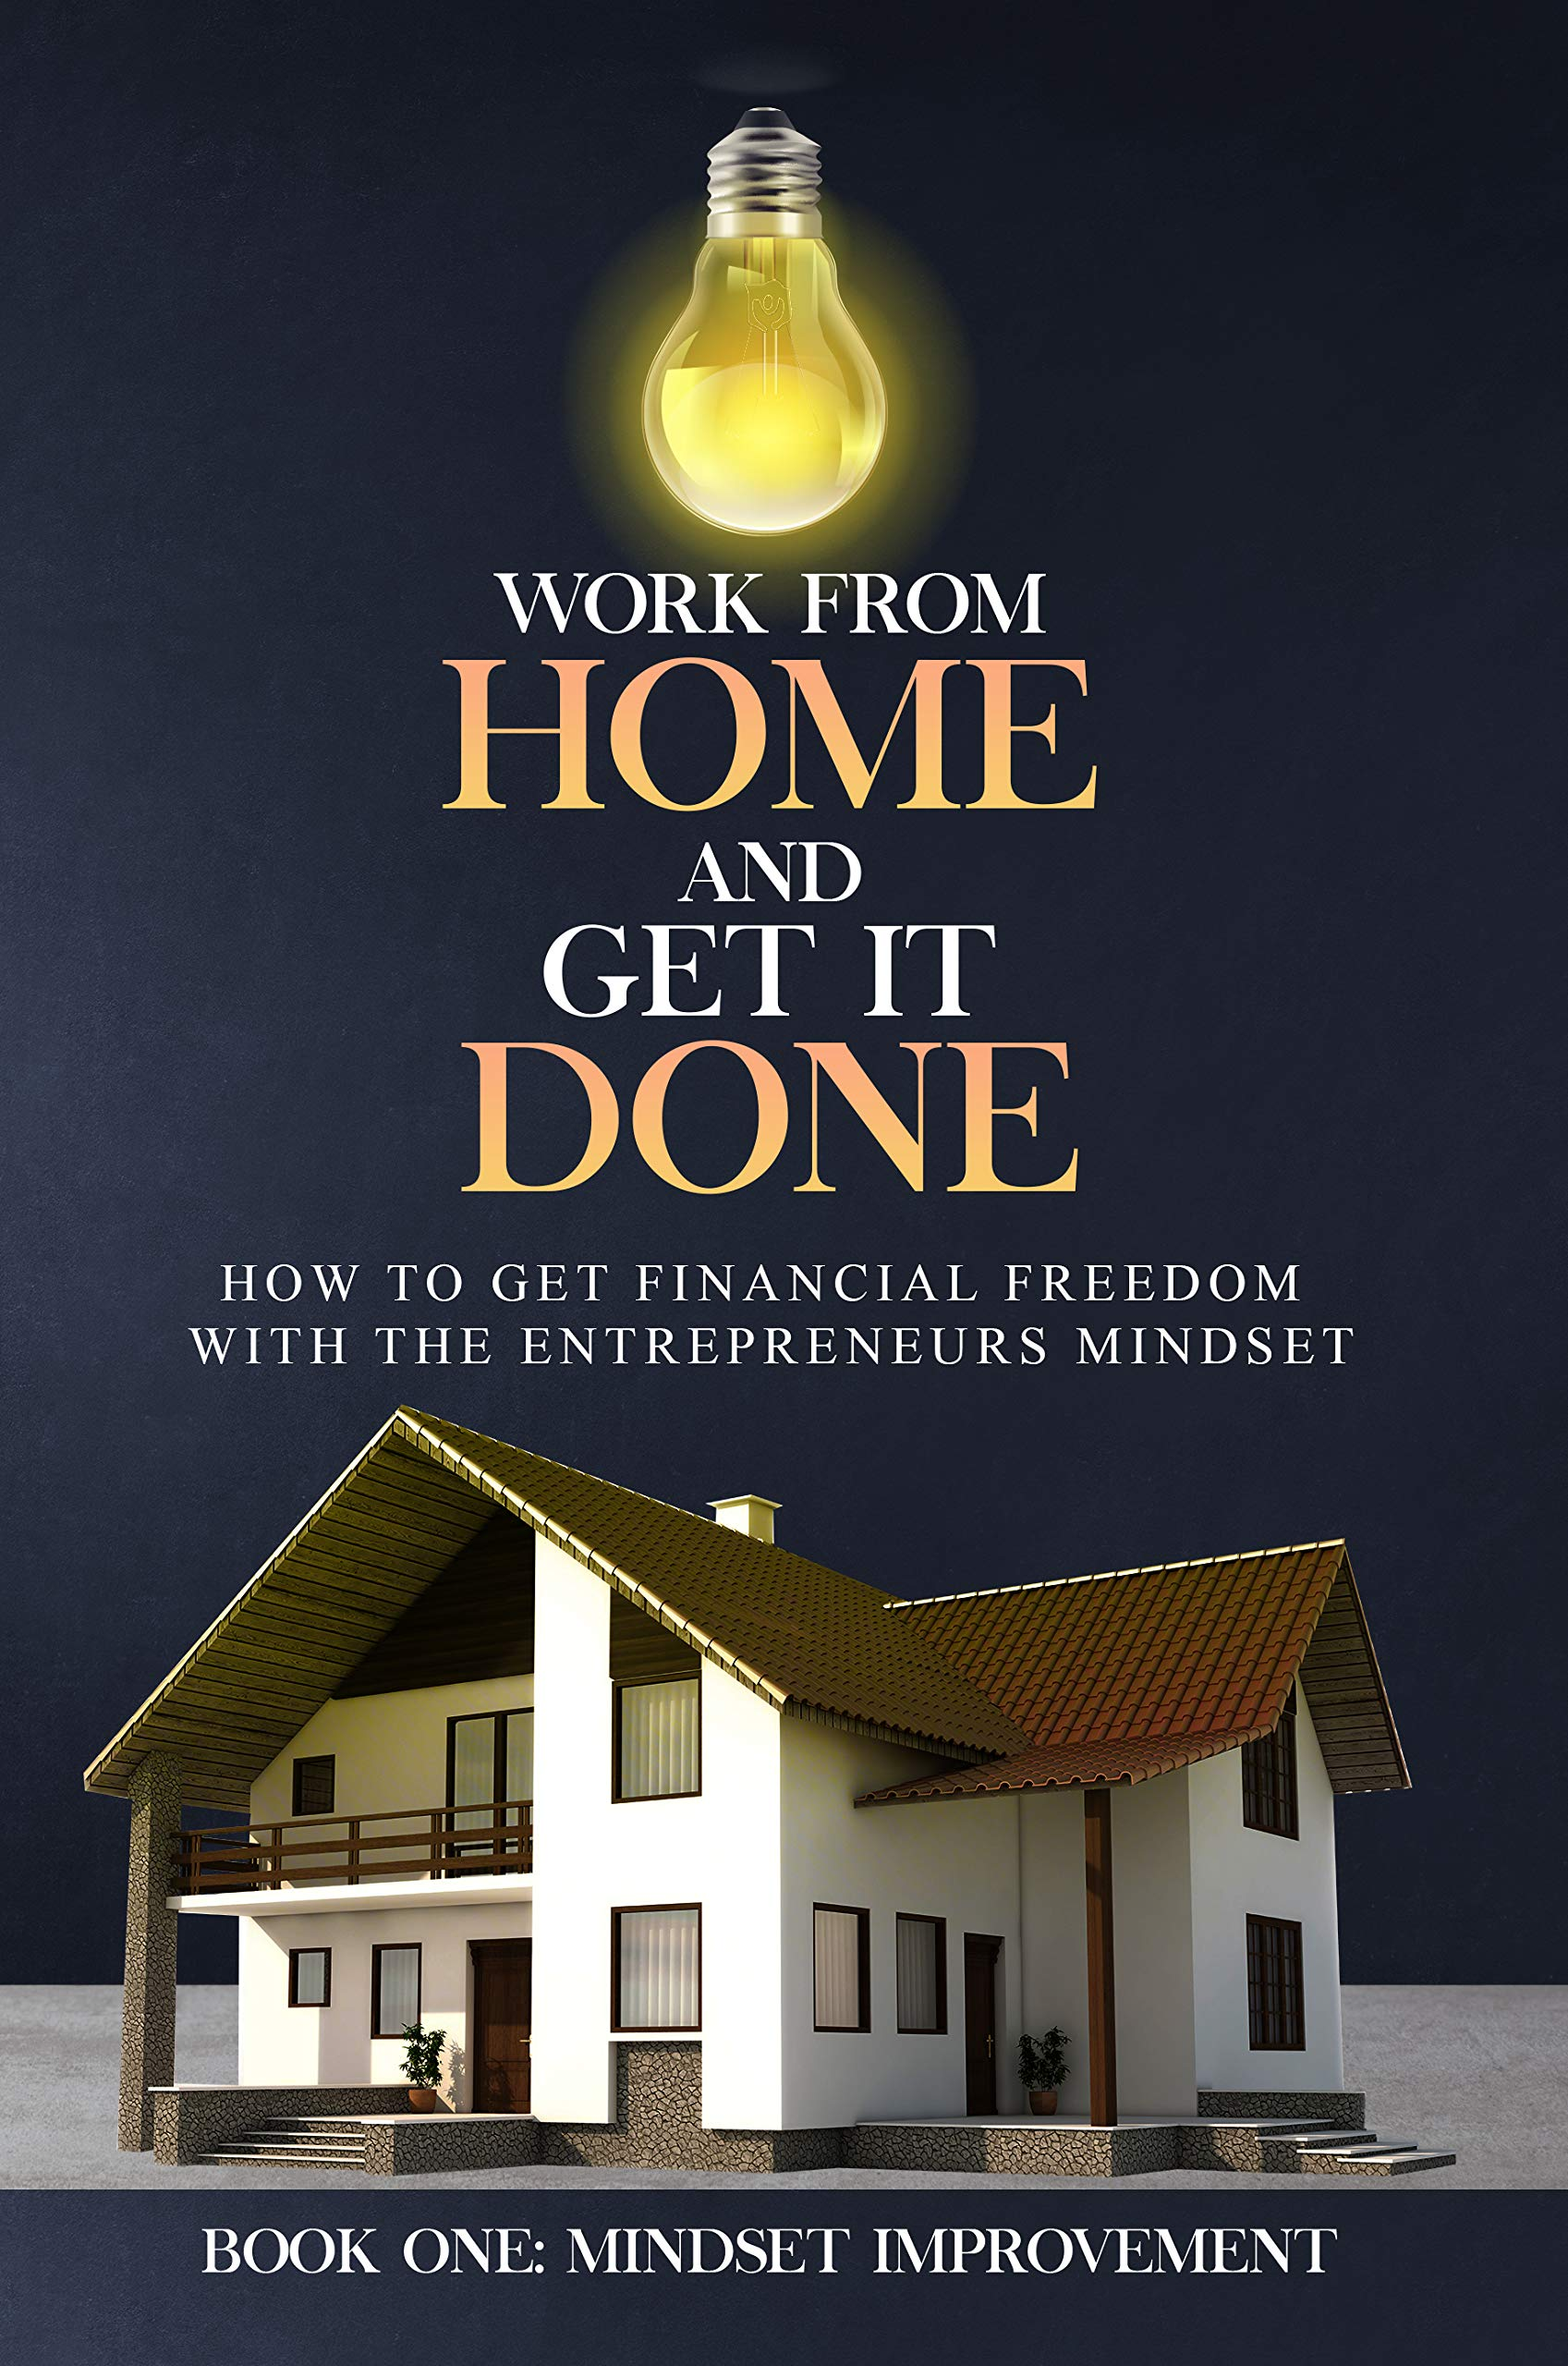 WORK from HOME and GET it DONE: How to get Financial Freedom with the Entrepreneurs Mindset (Work from Home and Get it Done Book 1)